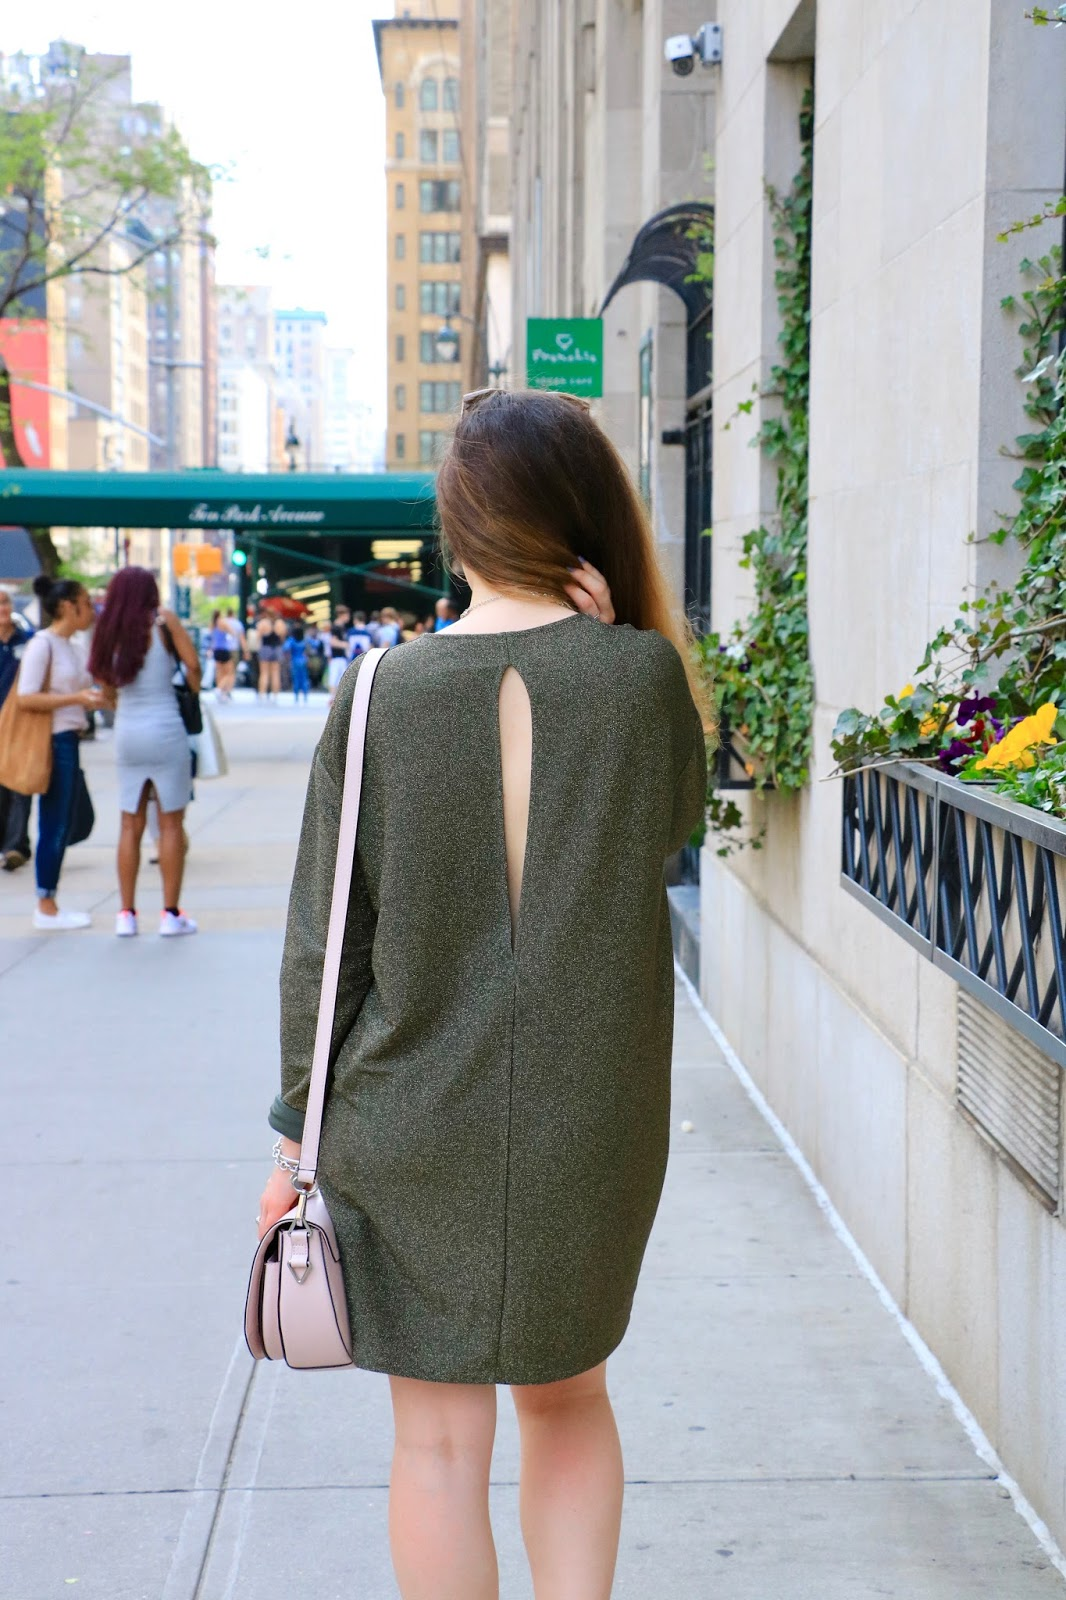 Fashion blogger Kathleen Harper wearing & Other Stories open-back dress